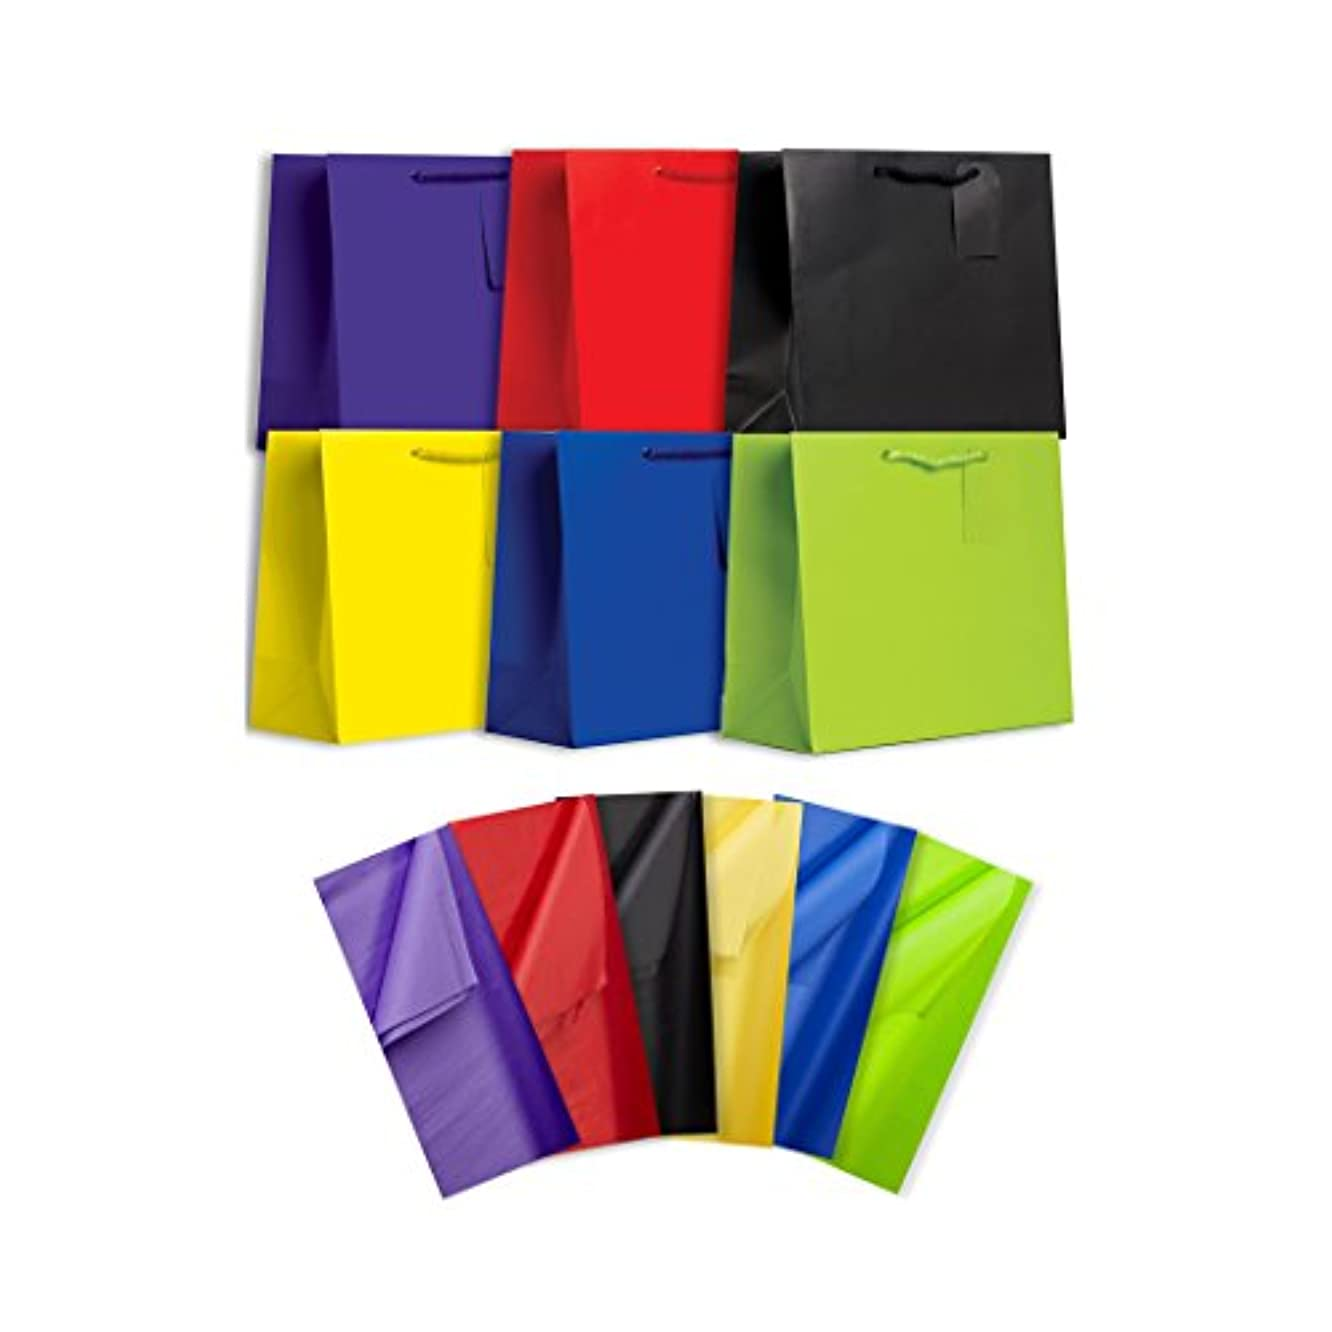 Jillson Roberts 6-Count Large All-Occasion Solid Color Gift Bags with Tissue Available in 4 Different Assortments, Perfectly Primary